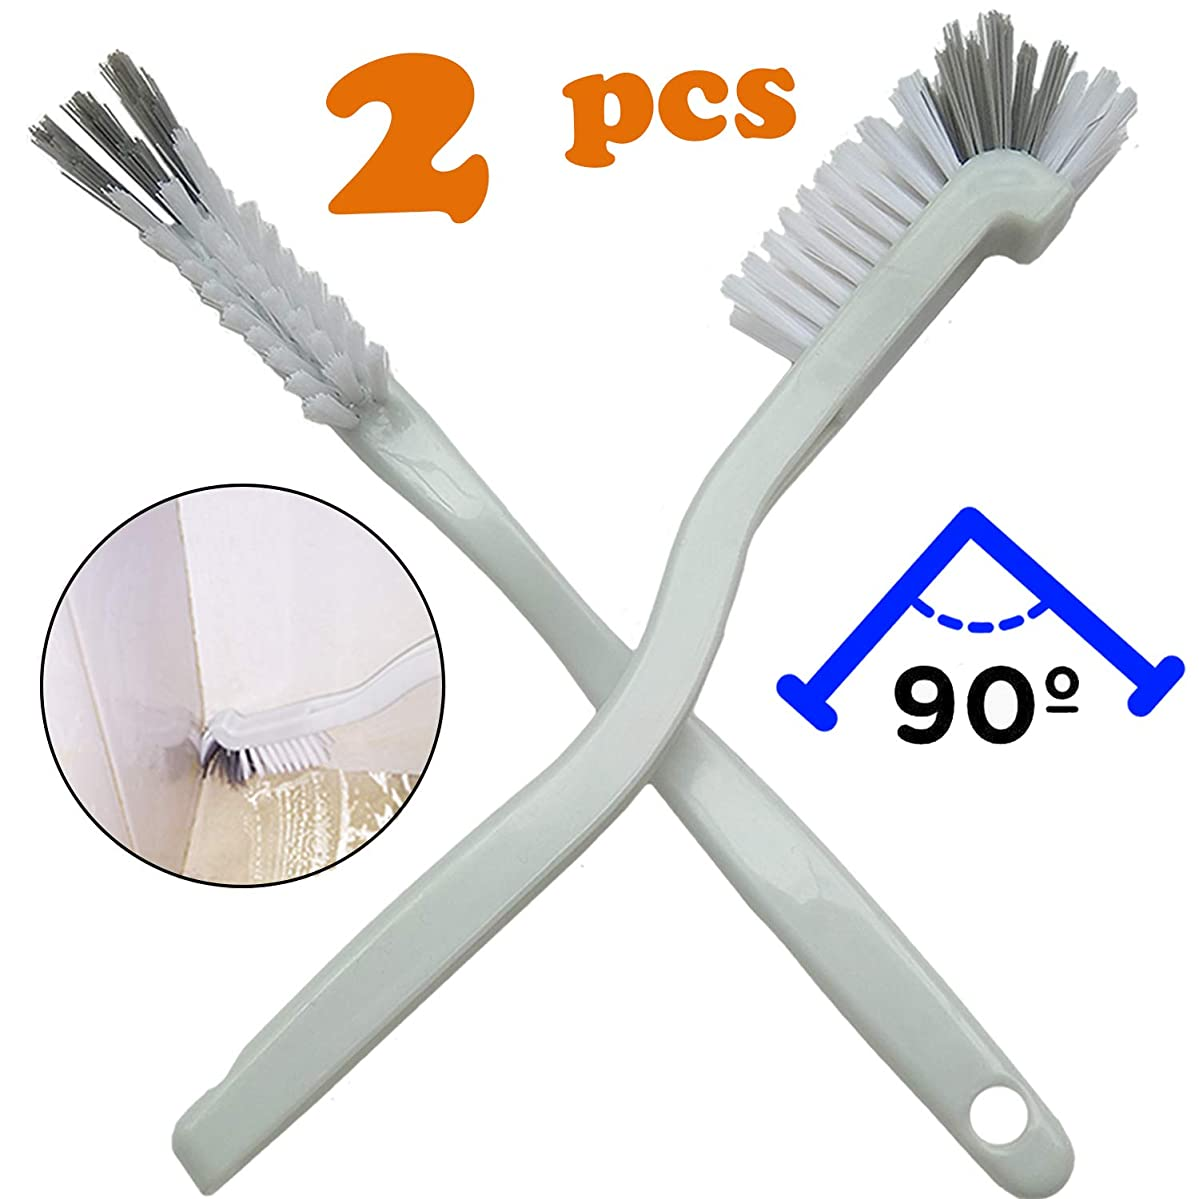 AncBace Dish Brush Kitchen Cleaning Brush Bottle Bathroom Scrub Brushes Sink household Pot Pan Edge Corners Tile Lines Brush with Stiff Bristles